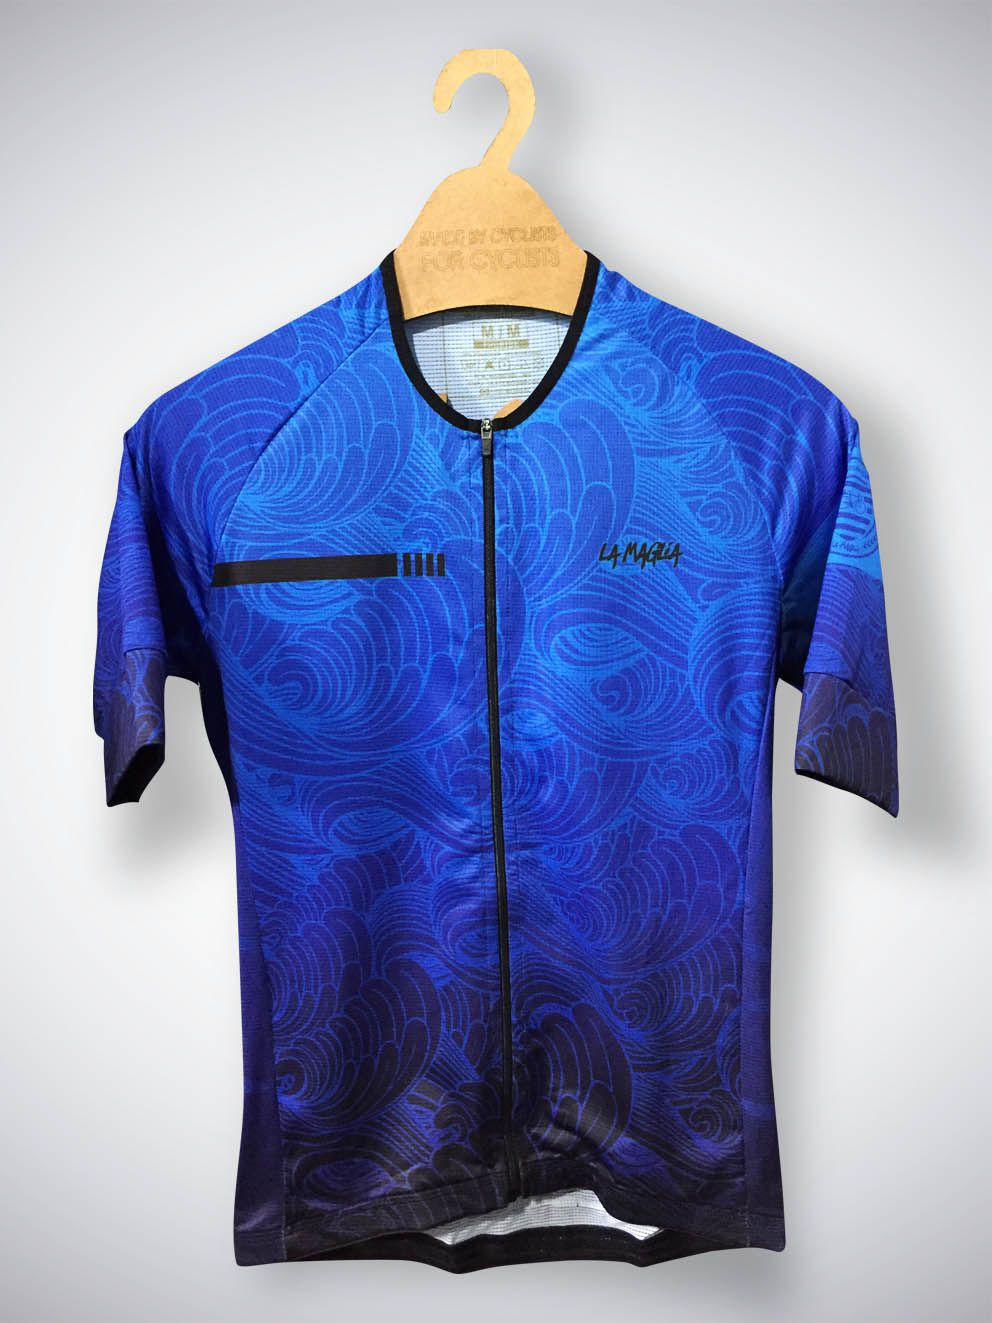 JERSEY PRORIDE MAR CHINES AZUL